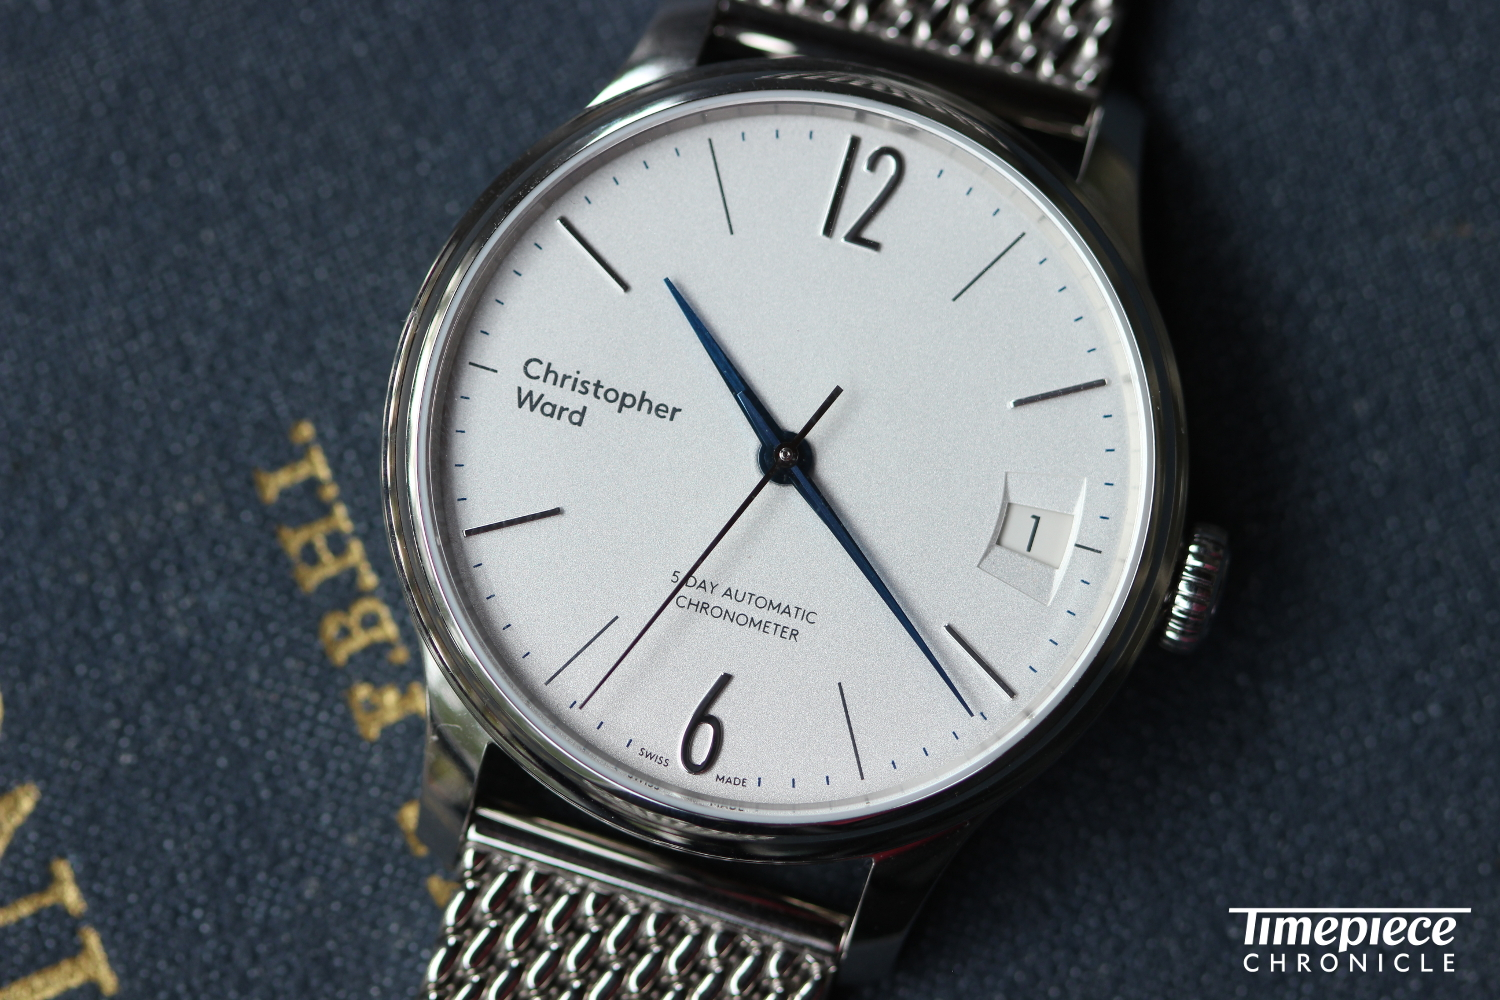 Christopher Ward 5 Day Automatic Dial 9.JPG